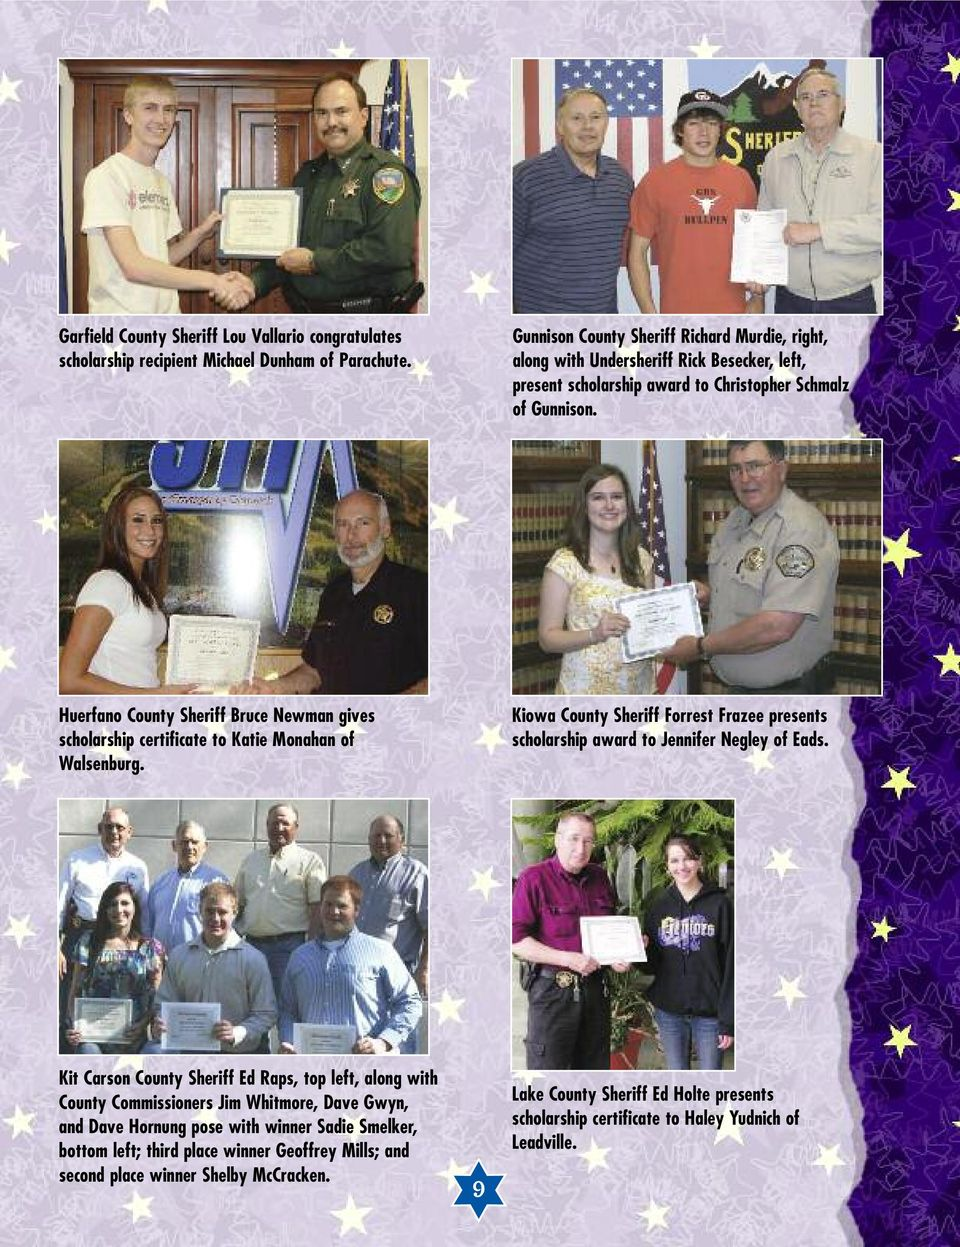 Huerfano County Sheriff Bruce Newman gives scholarship certificate to Katie Monahan of Walsenburg. Kiowa County Sheriff Forrest Frazee presents scholarship award to Jennifer Negley of Eads.